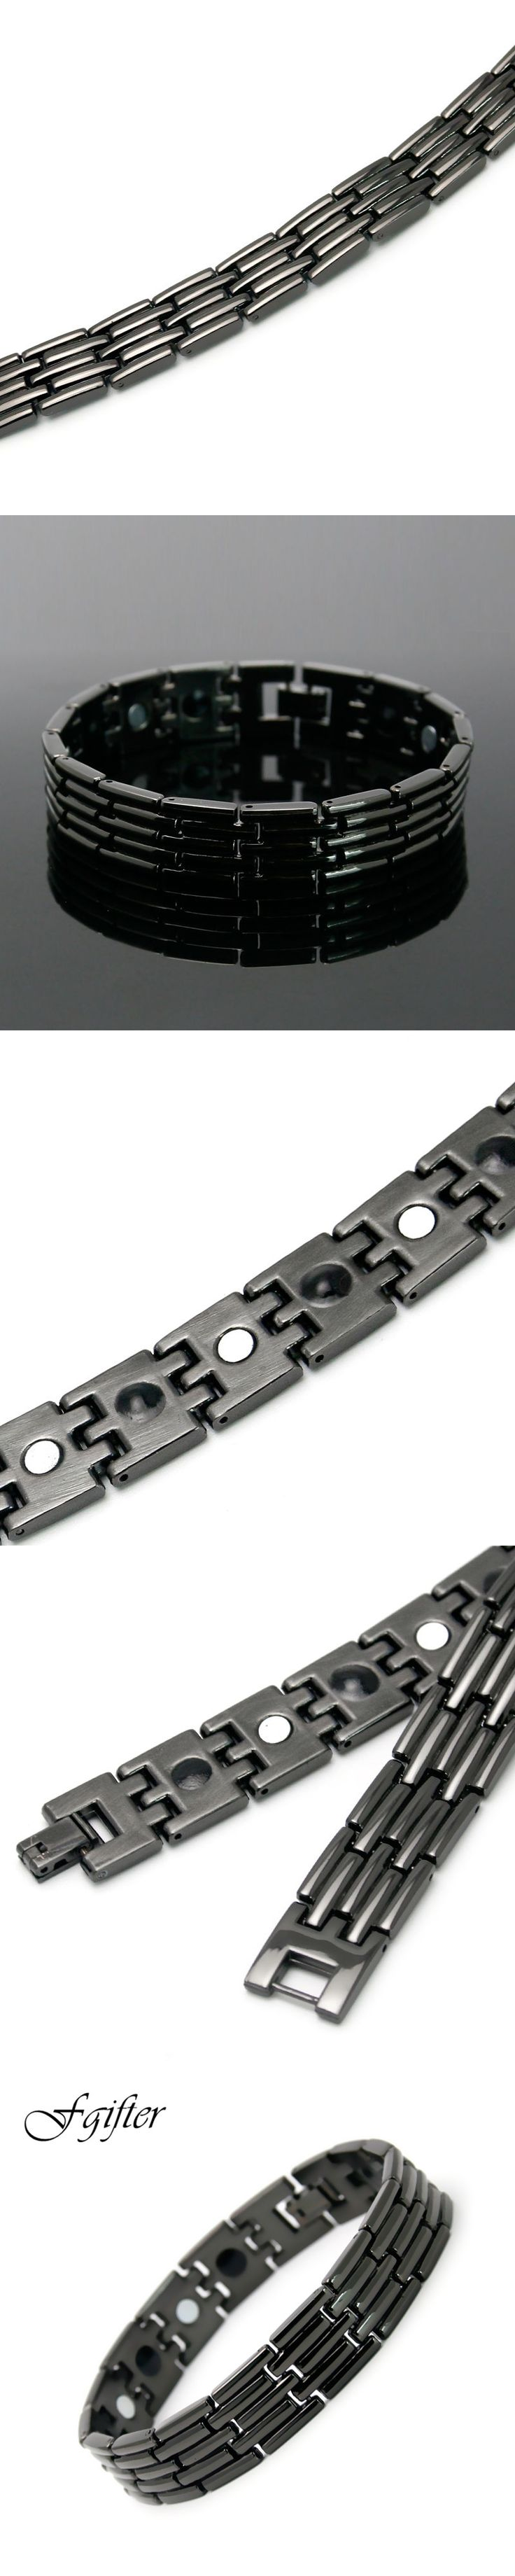 Black Stainless Steel Bracelet for Men High Quality Chain Link Bracelets 5 Styles Bangles Jewelry